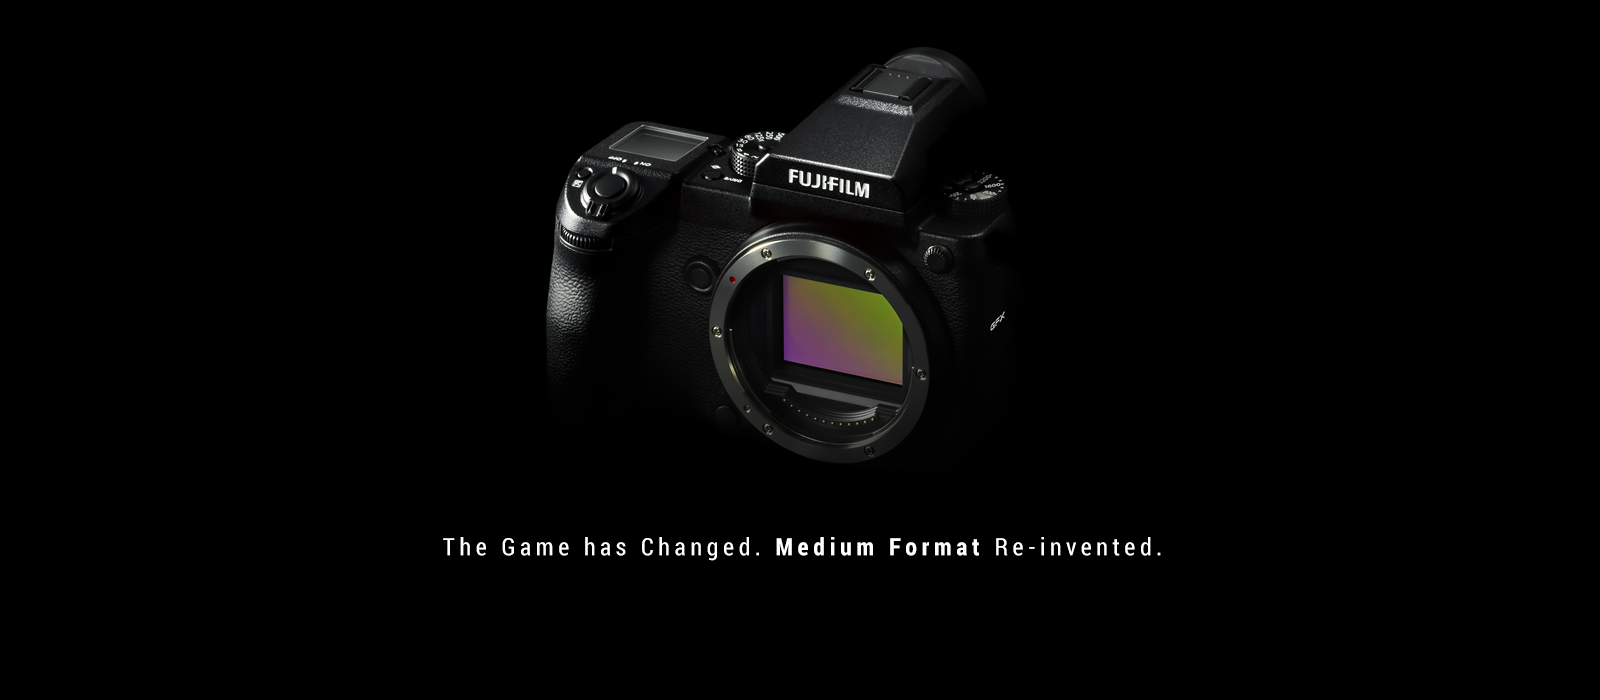 Join us and industry friends Fujifilm on Tuesday 7th November 2017 to discover the new Fujifilm GFX 50S medium format camera! During the evening you will have the opportunity to look at the incredible GFX system followed by a guided tour of our professional photographic lab seeing behind the scenes of our production process from film to […]